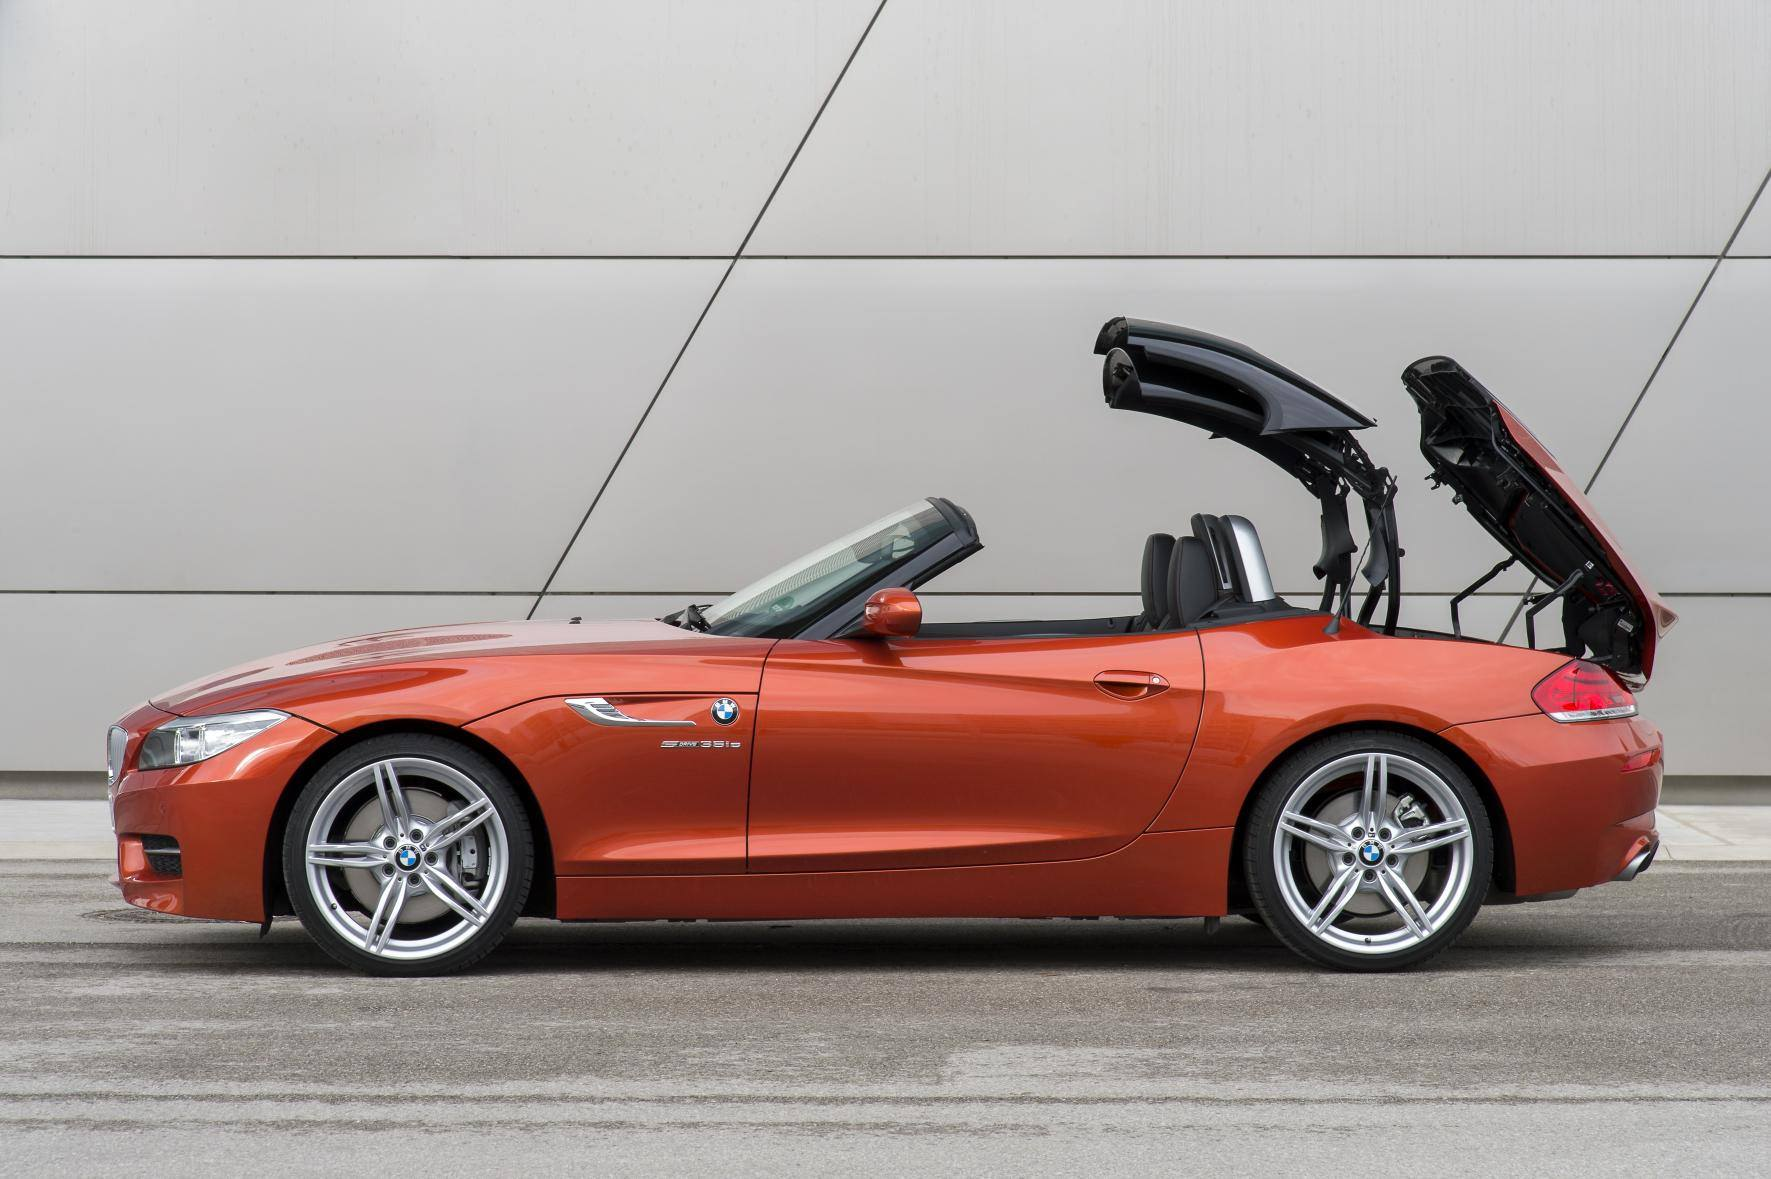 image of an orange bmw z4 convertible car exterior